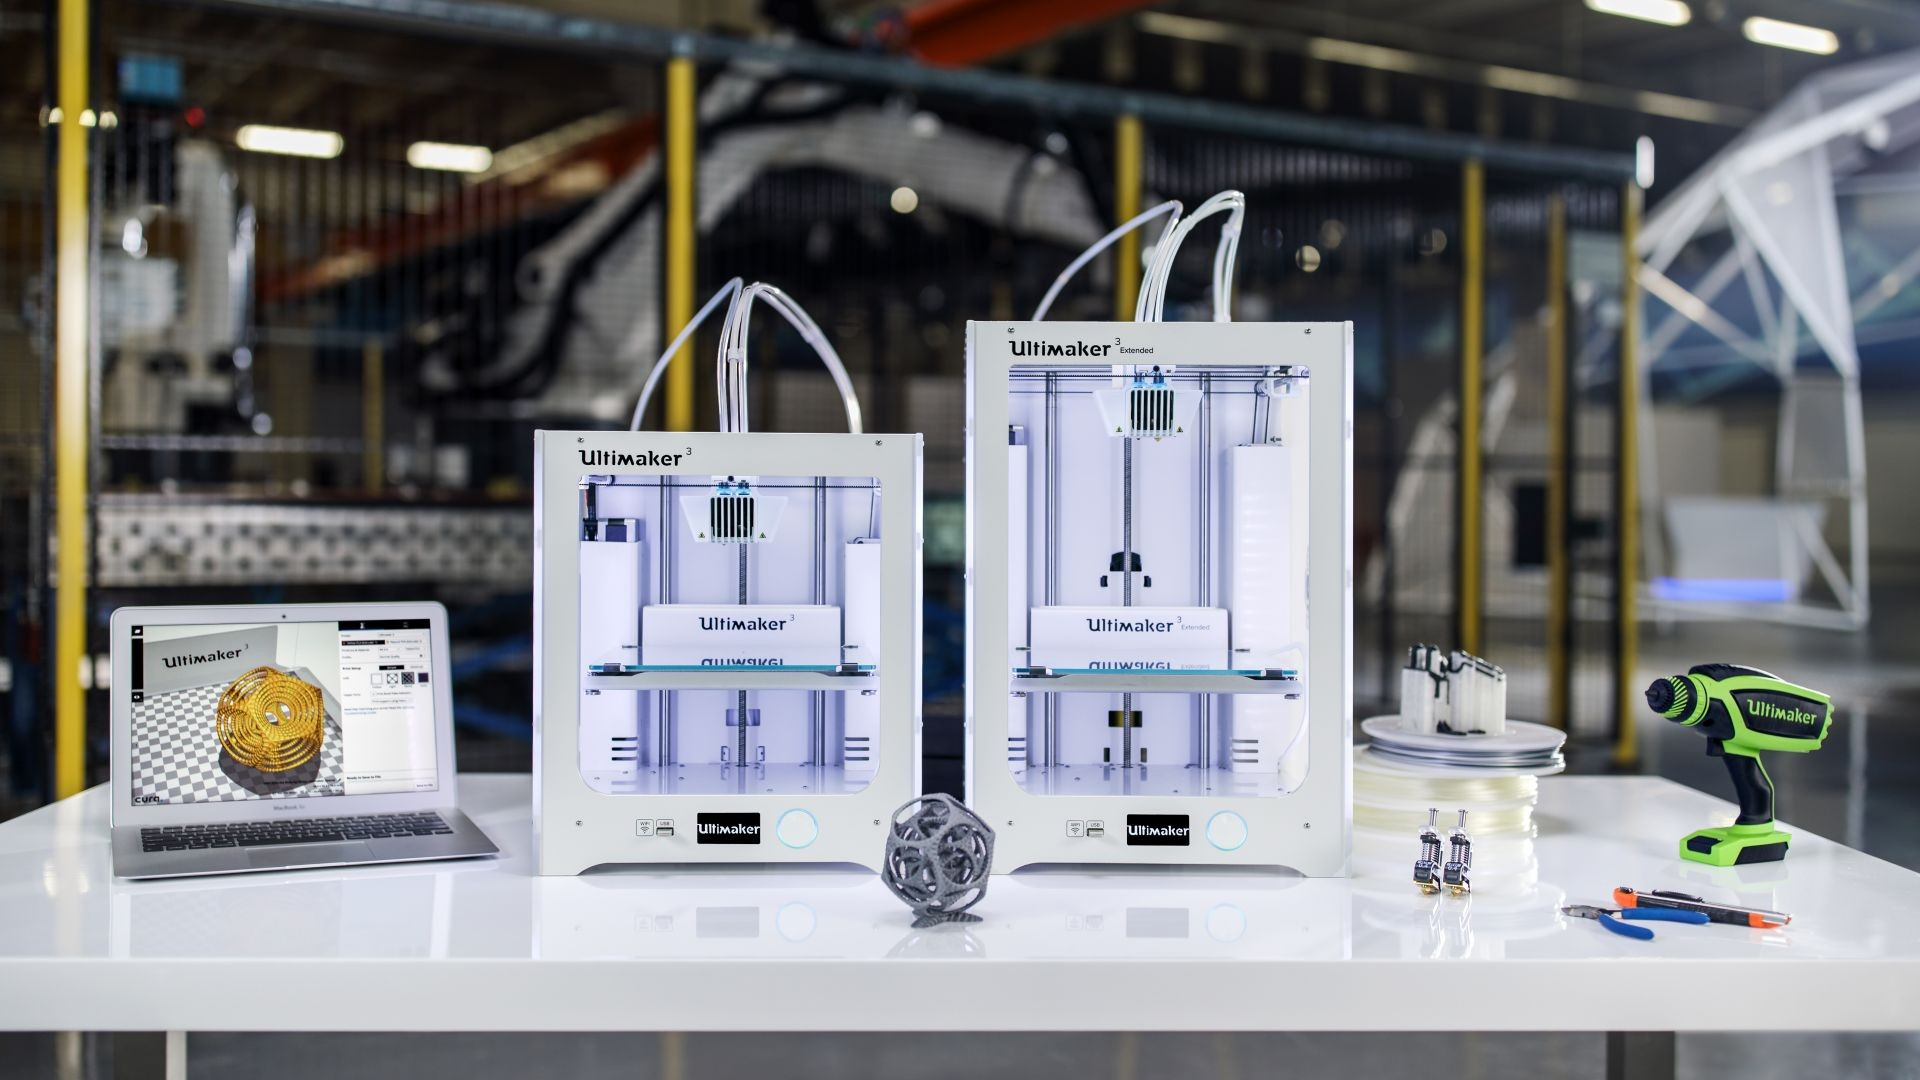 Ultimaker Unveils Ultimaker 3: Its Next Generation Professional 3D Printer